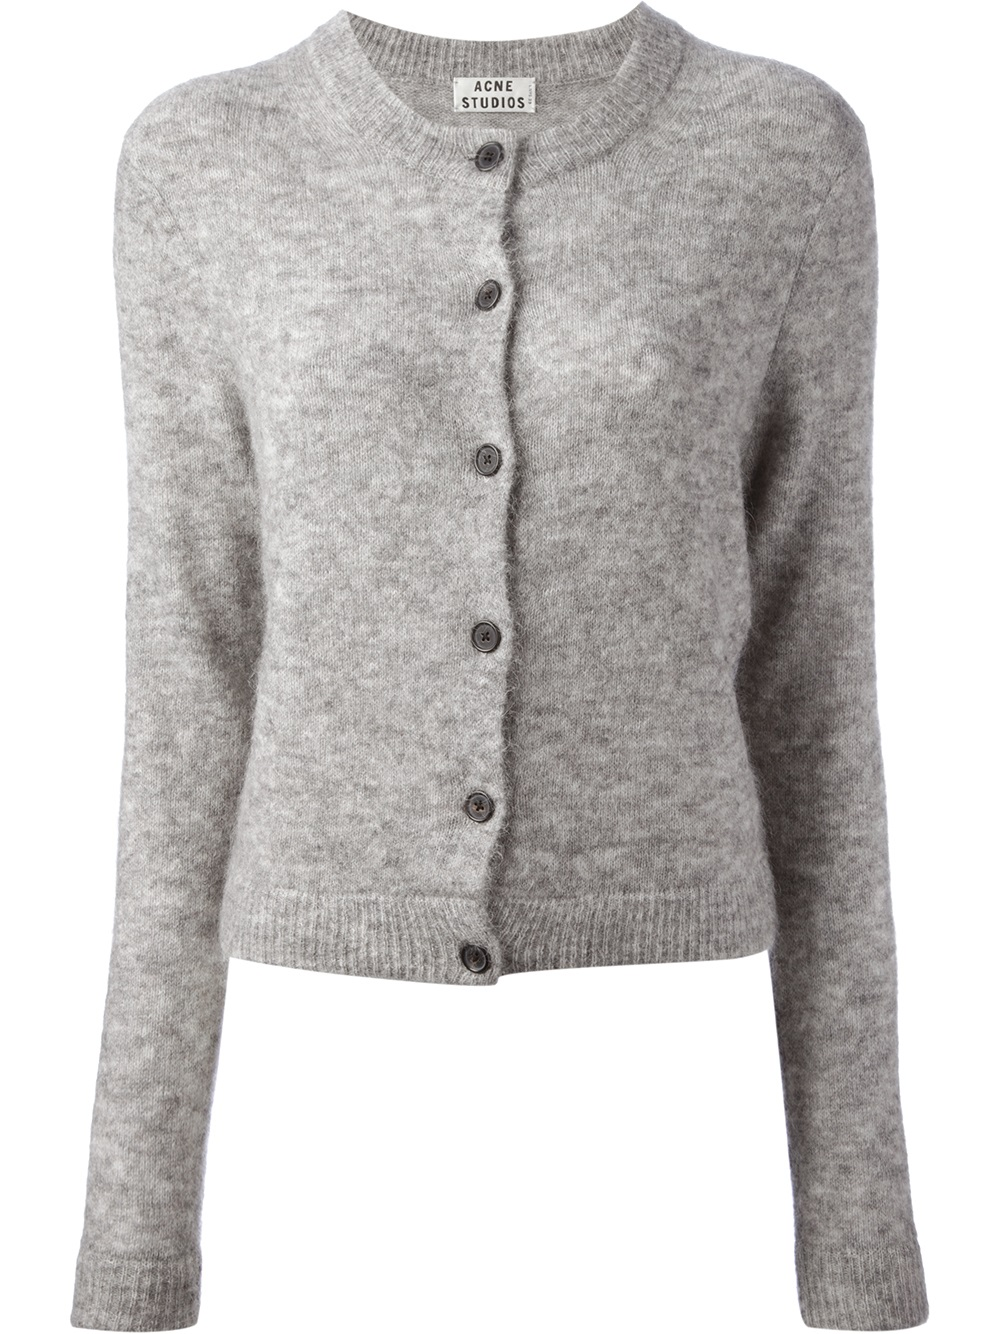 Enjoy free shipping and easy returns every day at Kohl's. Find great deals on Womens Grey Cardigan Sweaters at Kohl's today!